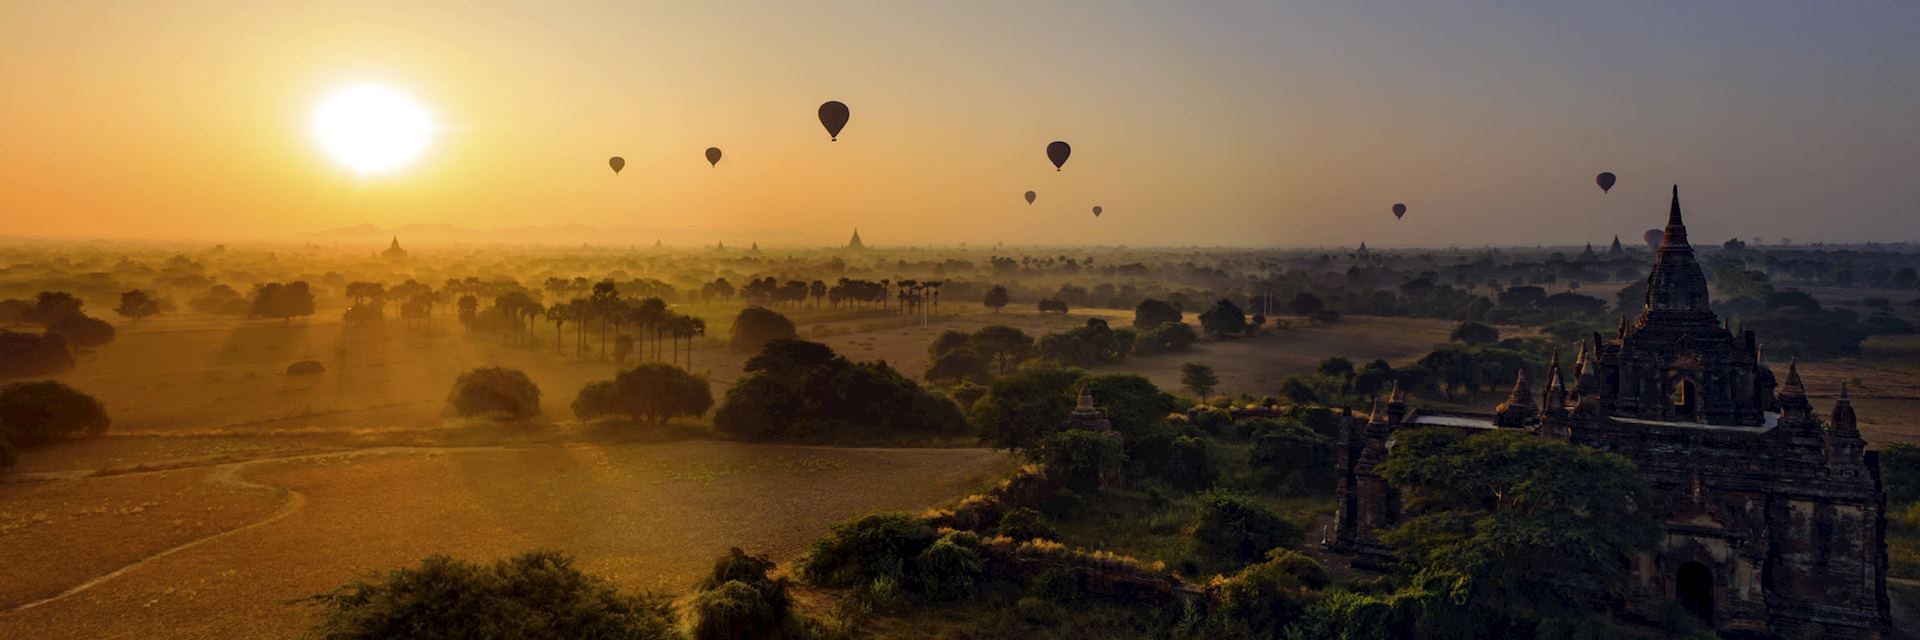 Balloon's over Bagan